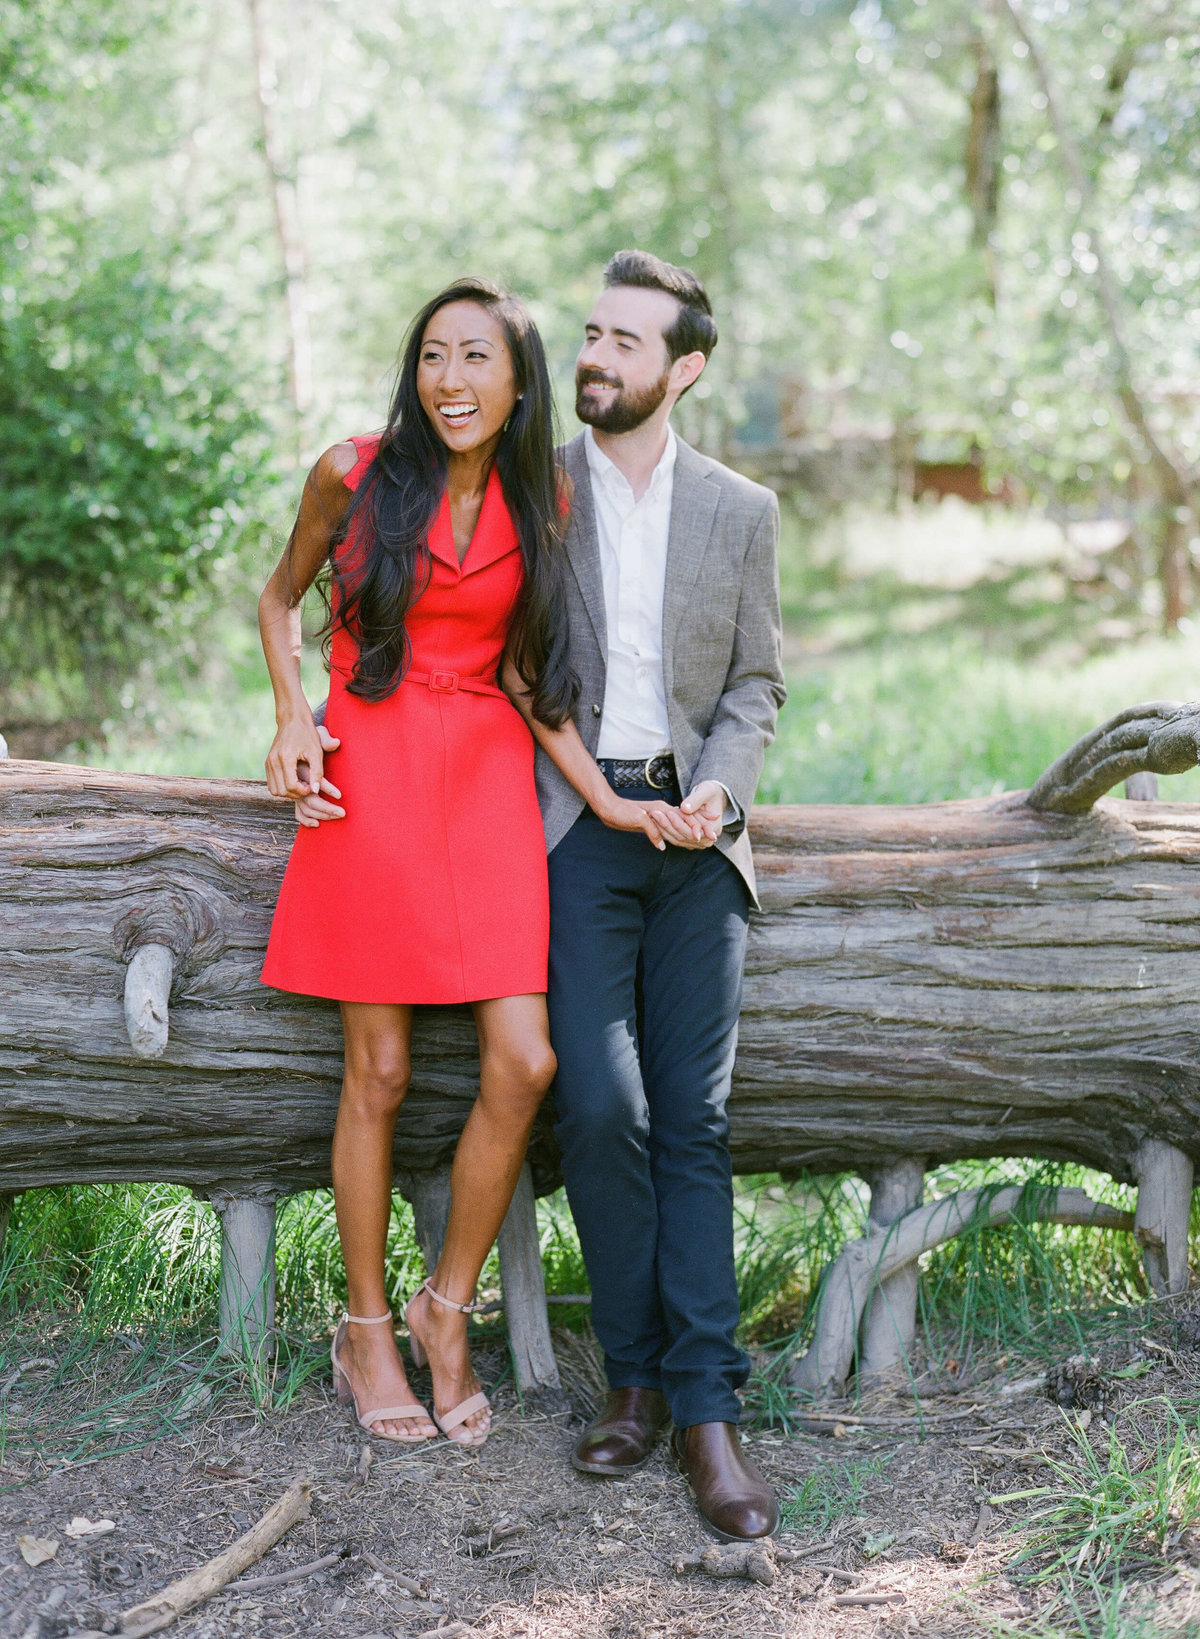 49-KTMerry-destination-engagement-Yosemite-couple-tree